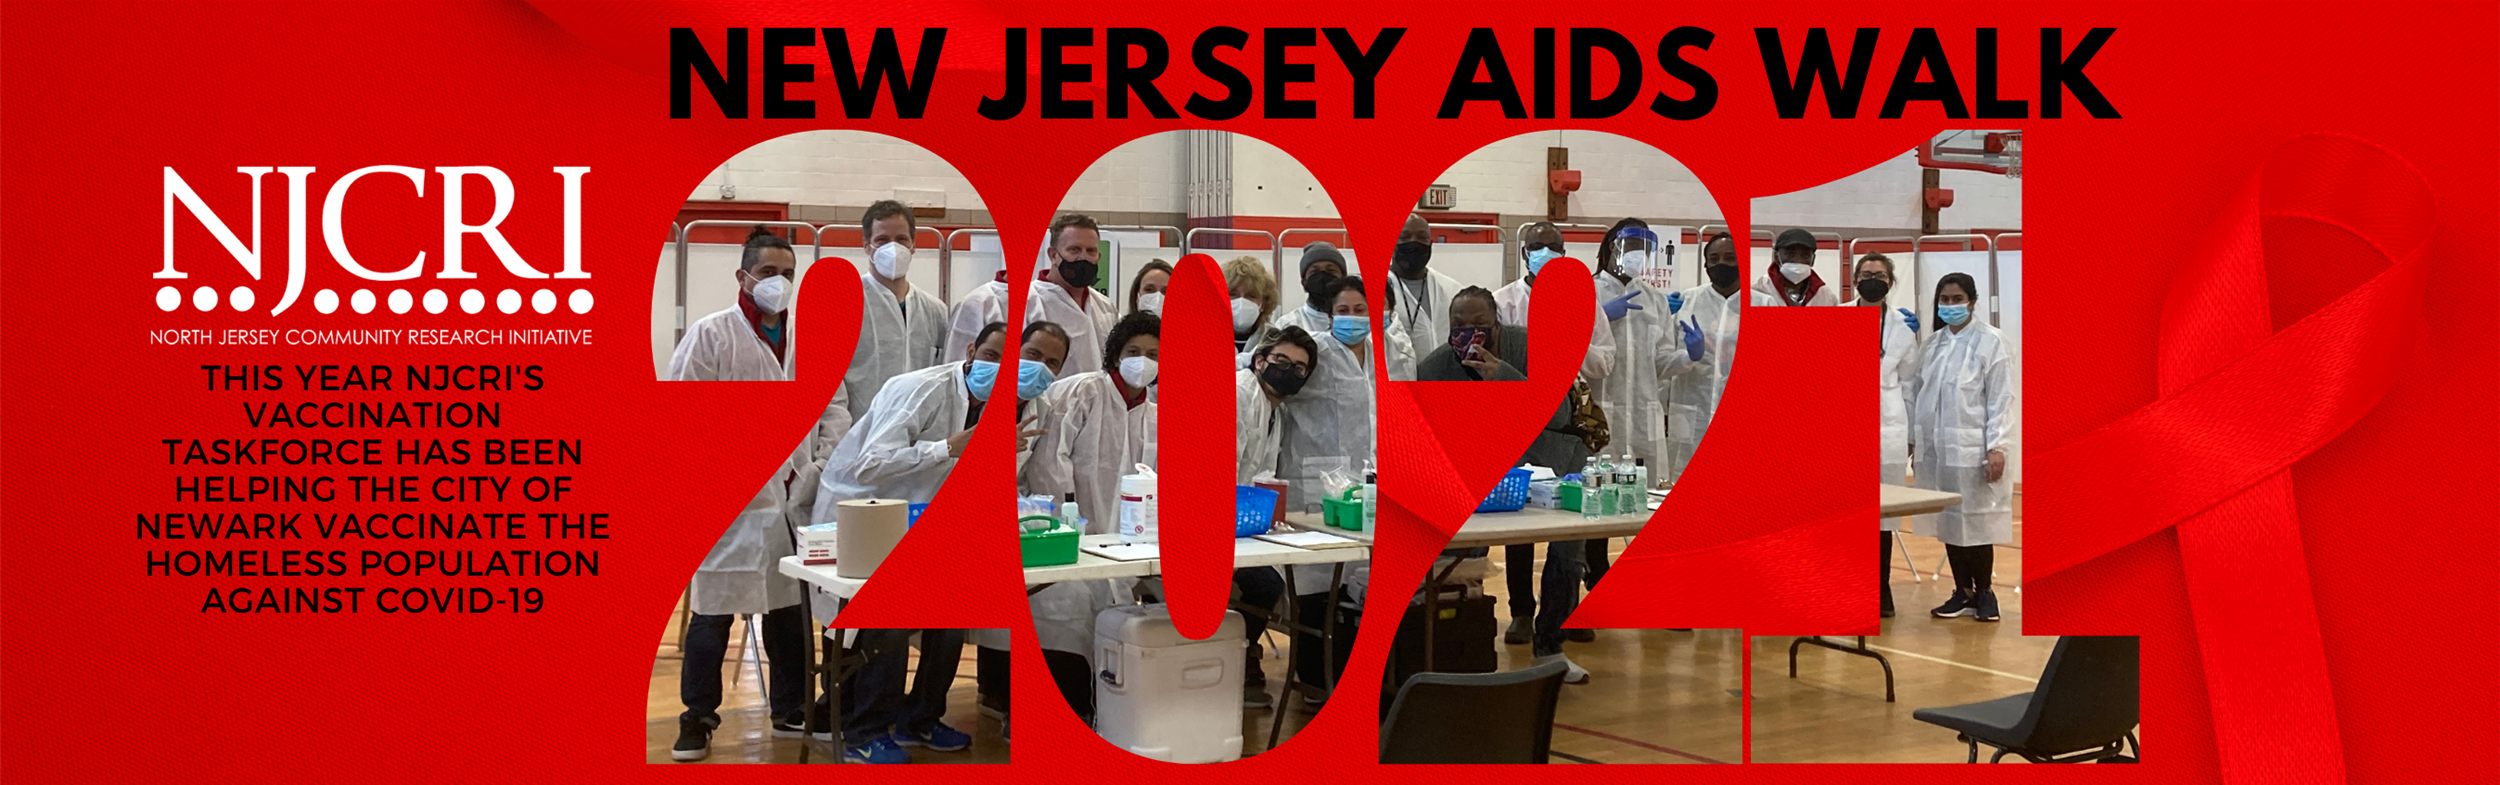 Copy_of_New_Jersey_AIDS_Walk_(1).png